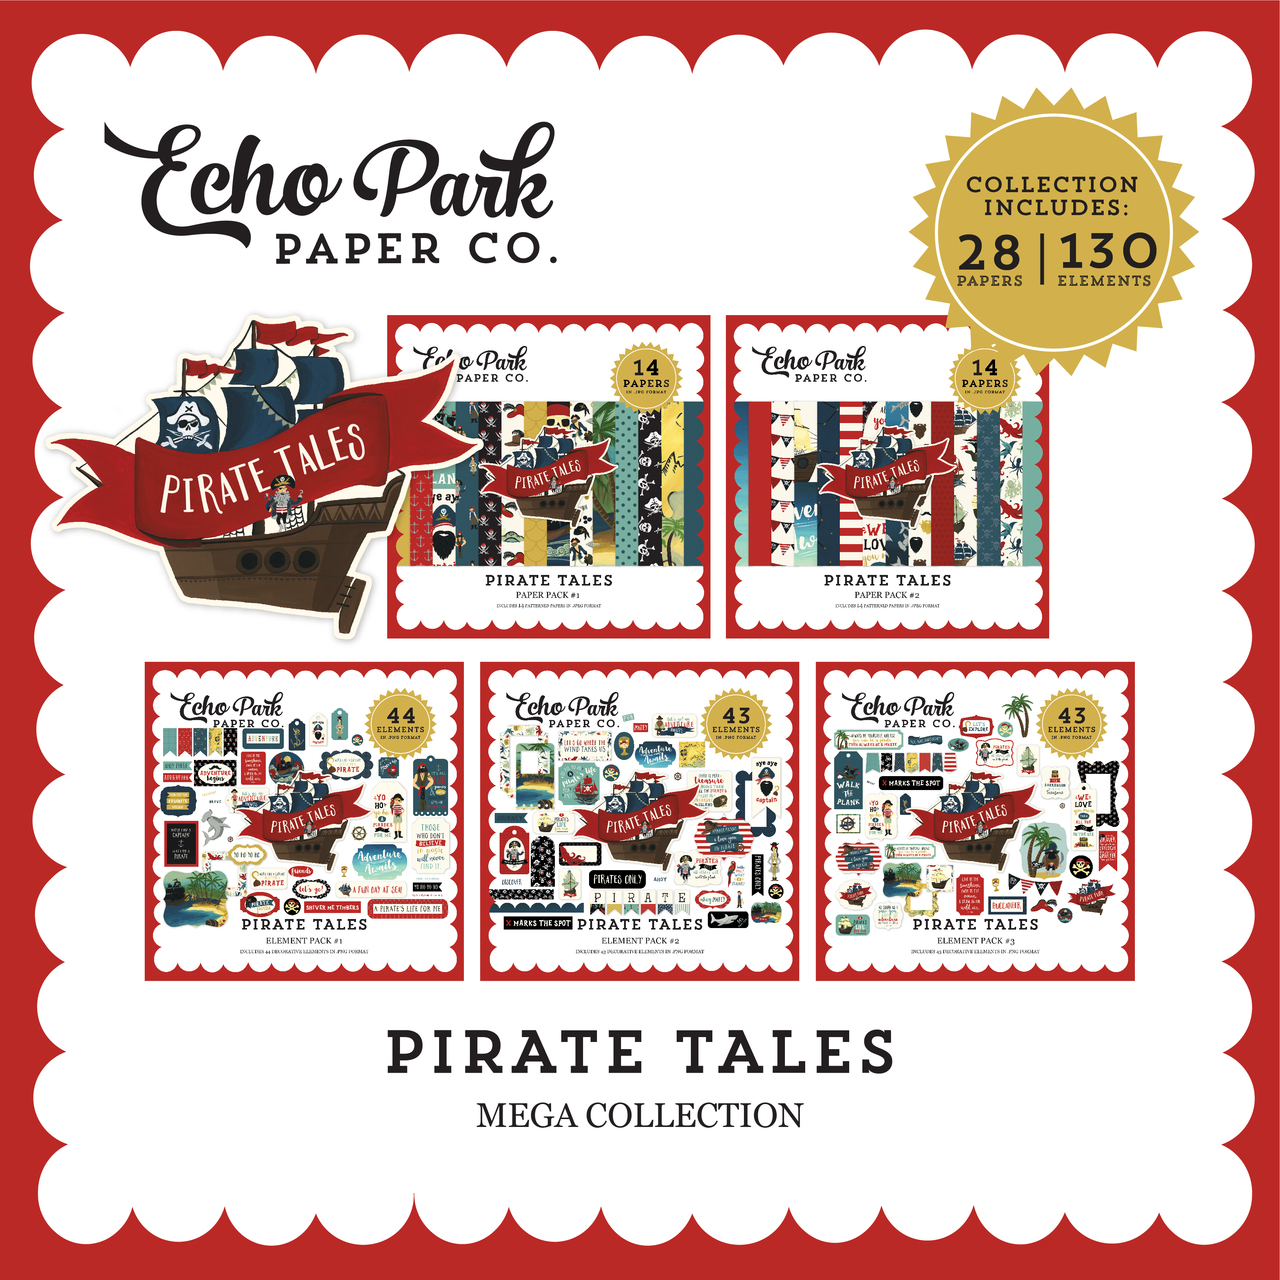 Pirate Tales Mega Collection